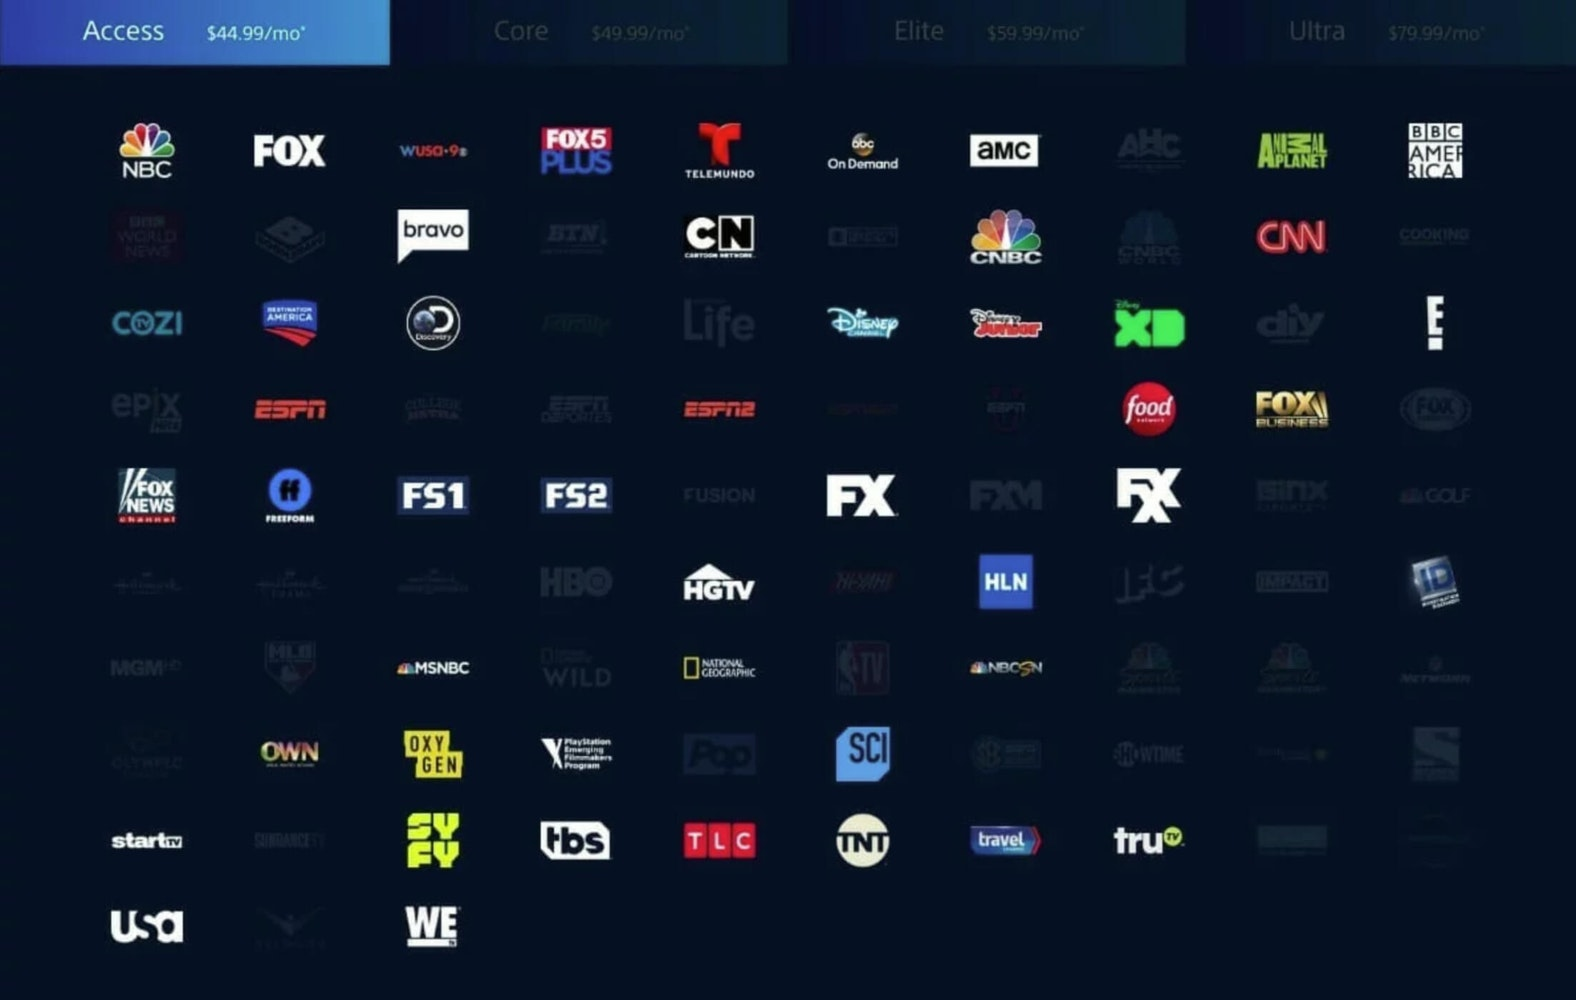 titans chargers playstation vue streaming nfl cbs